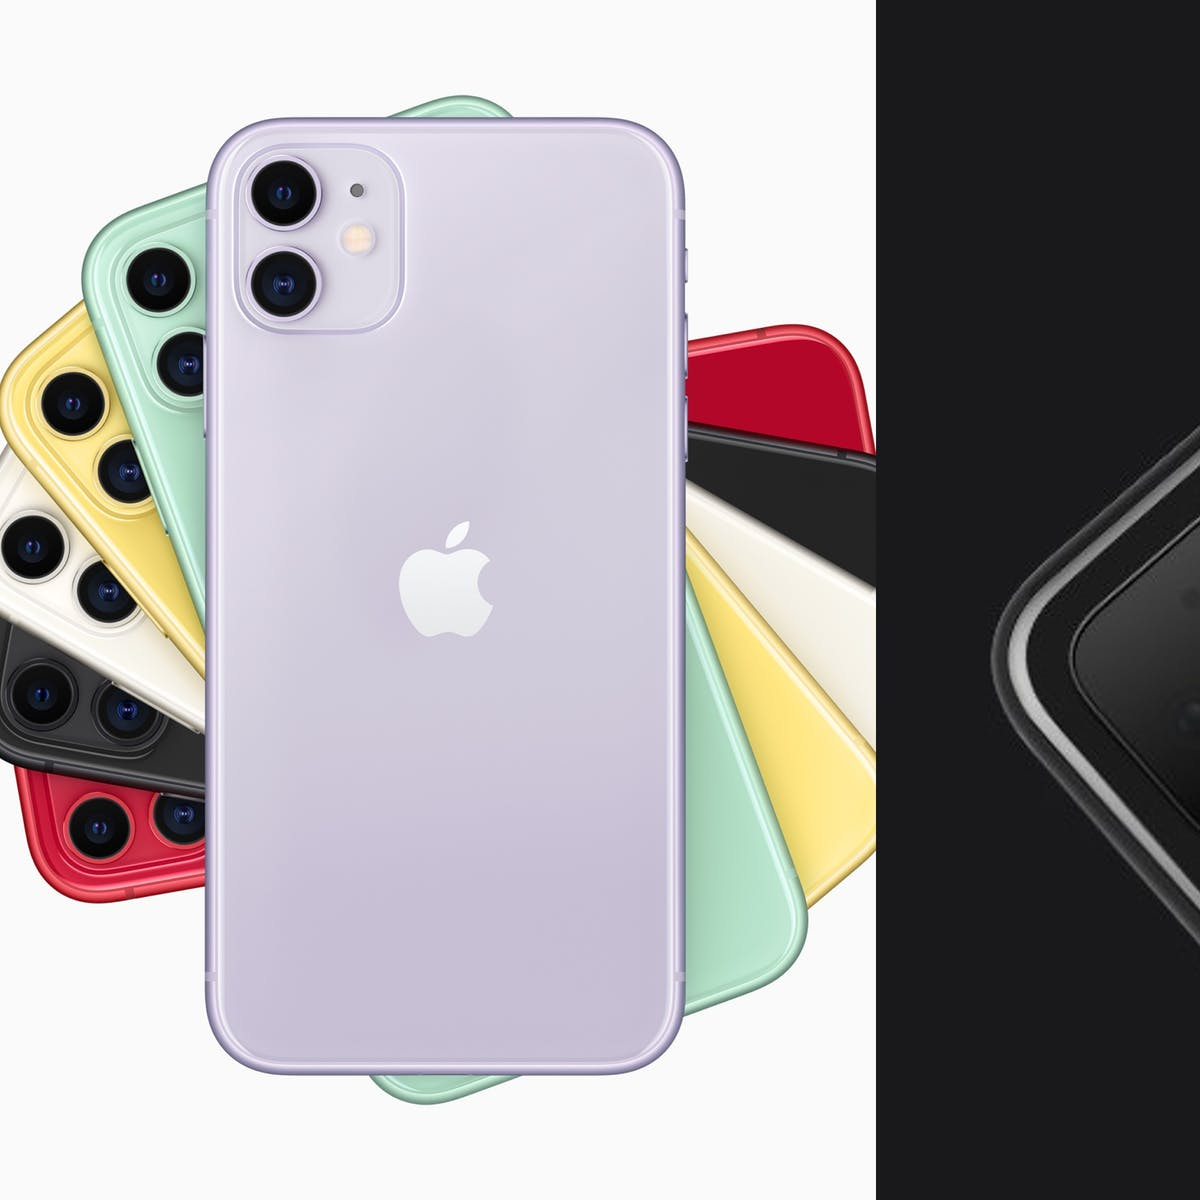 iPhone 11 vs. Google Pixel 4: Price and Features for Dual-Lens Apple Phone